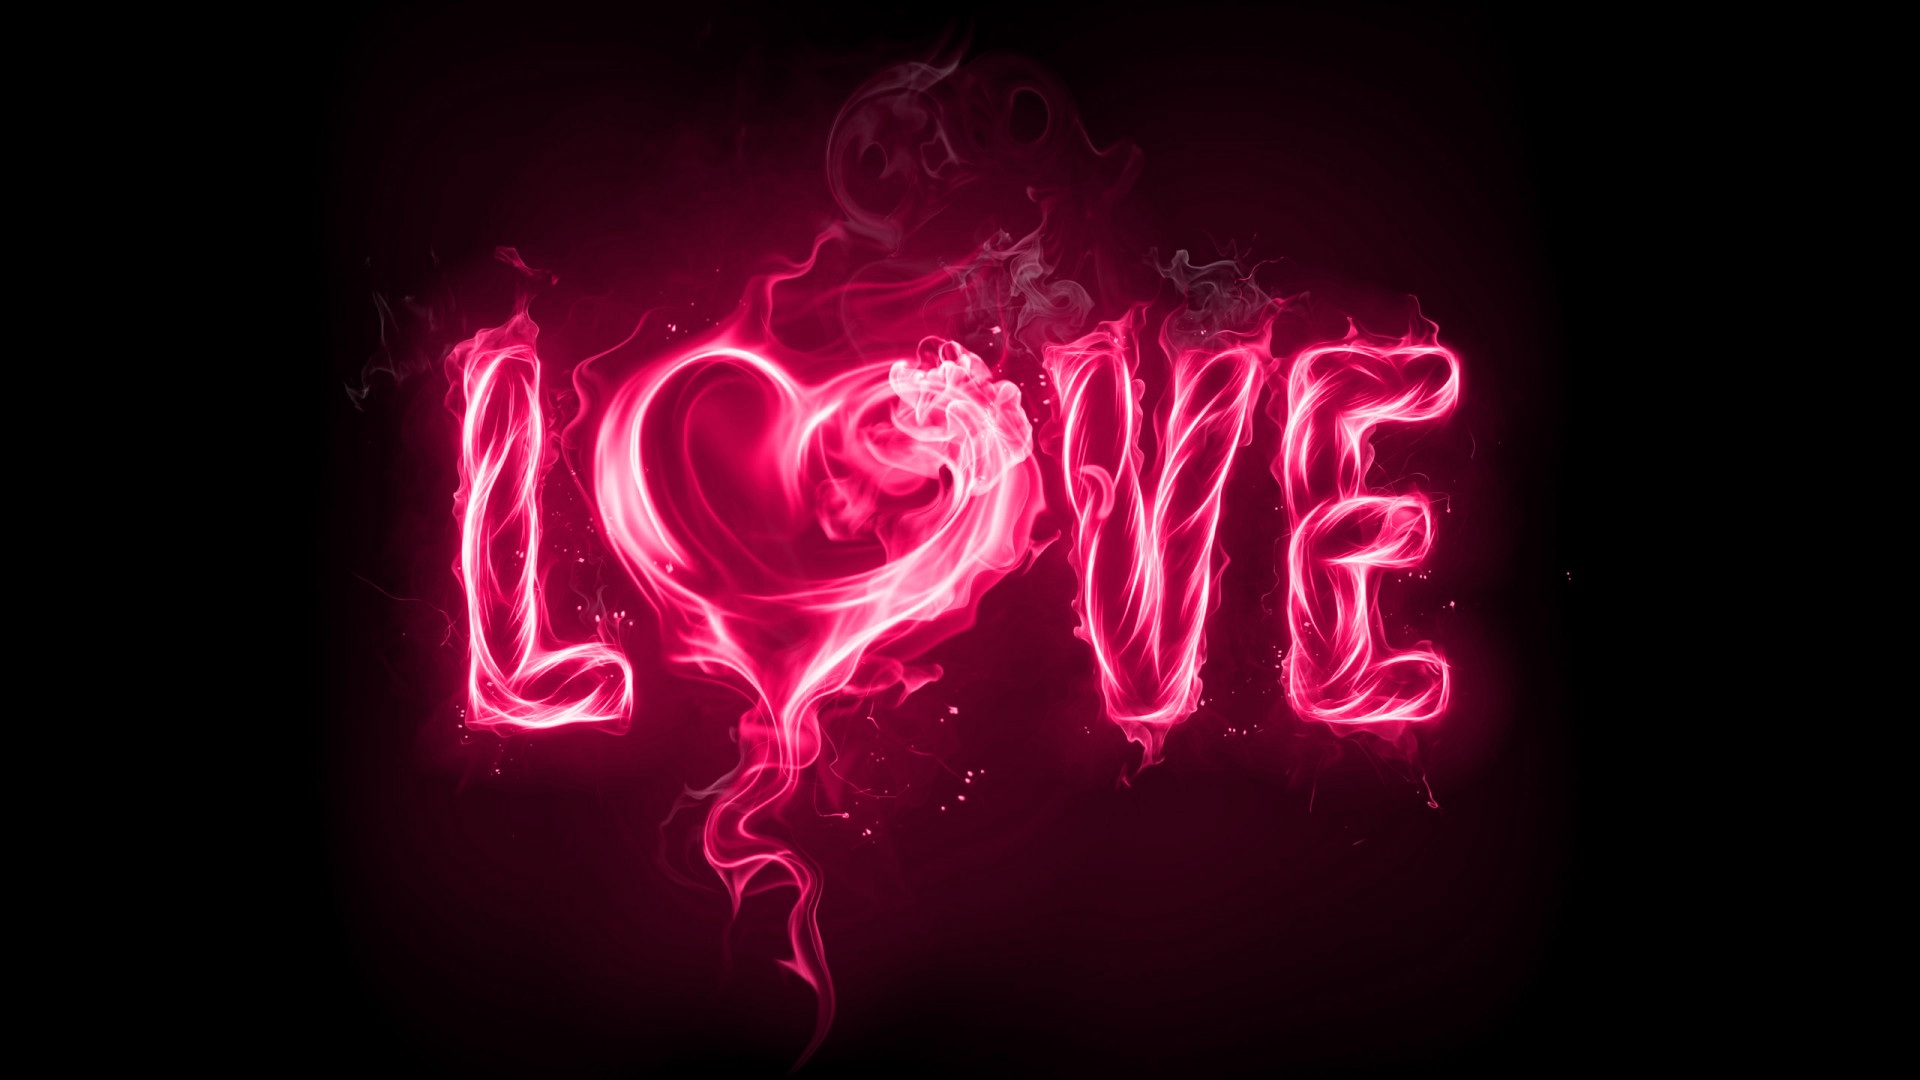 love full hd wallpaper and background image | 1920x1080 | id:329944